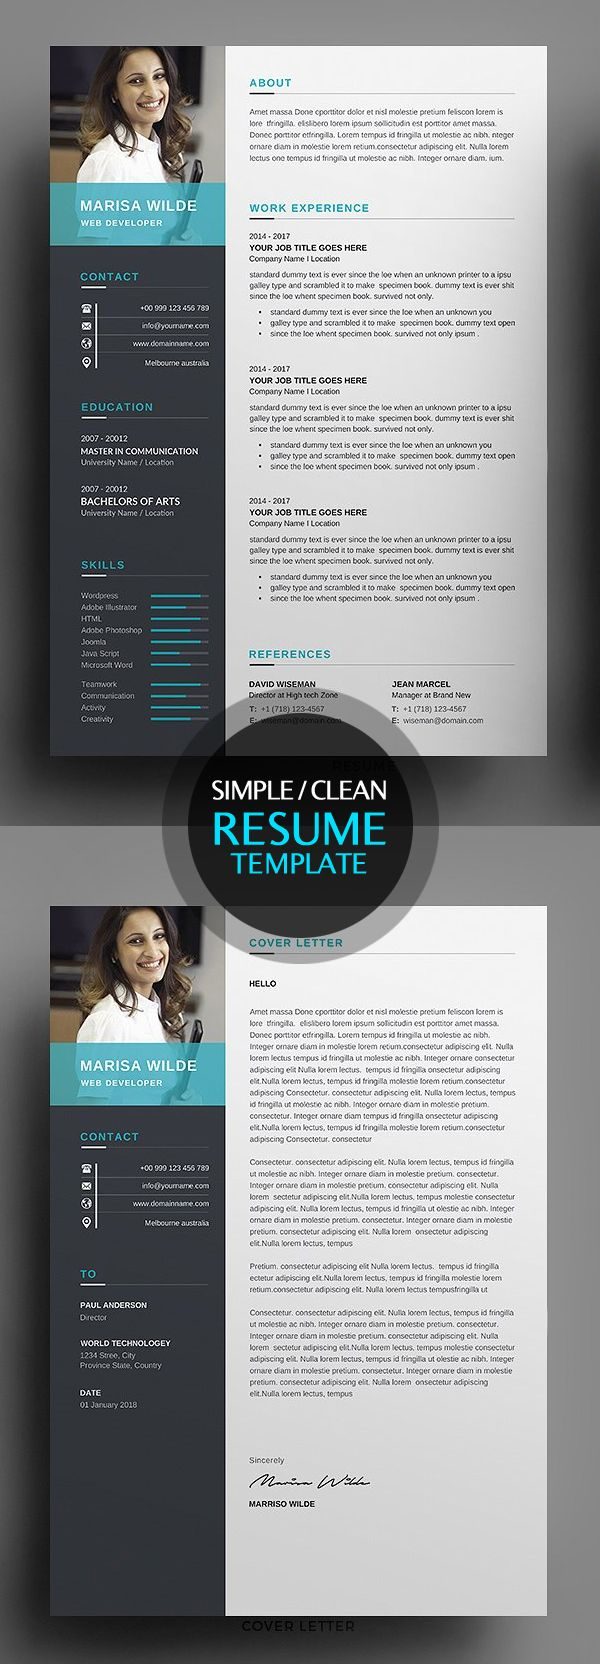 Fresh Simple Clean Resume Templates And Cover Letter  Pers Dev